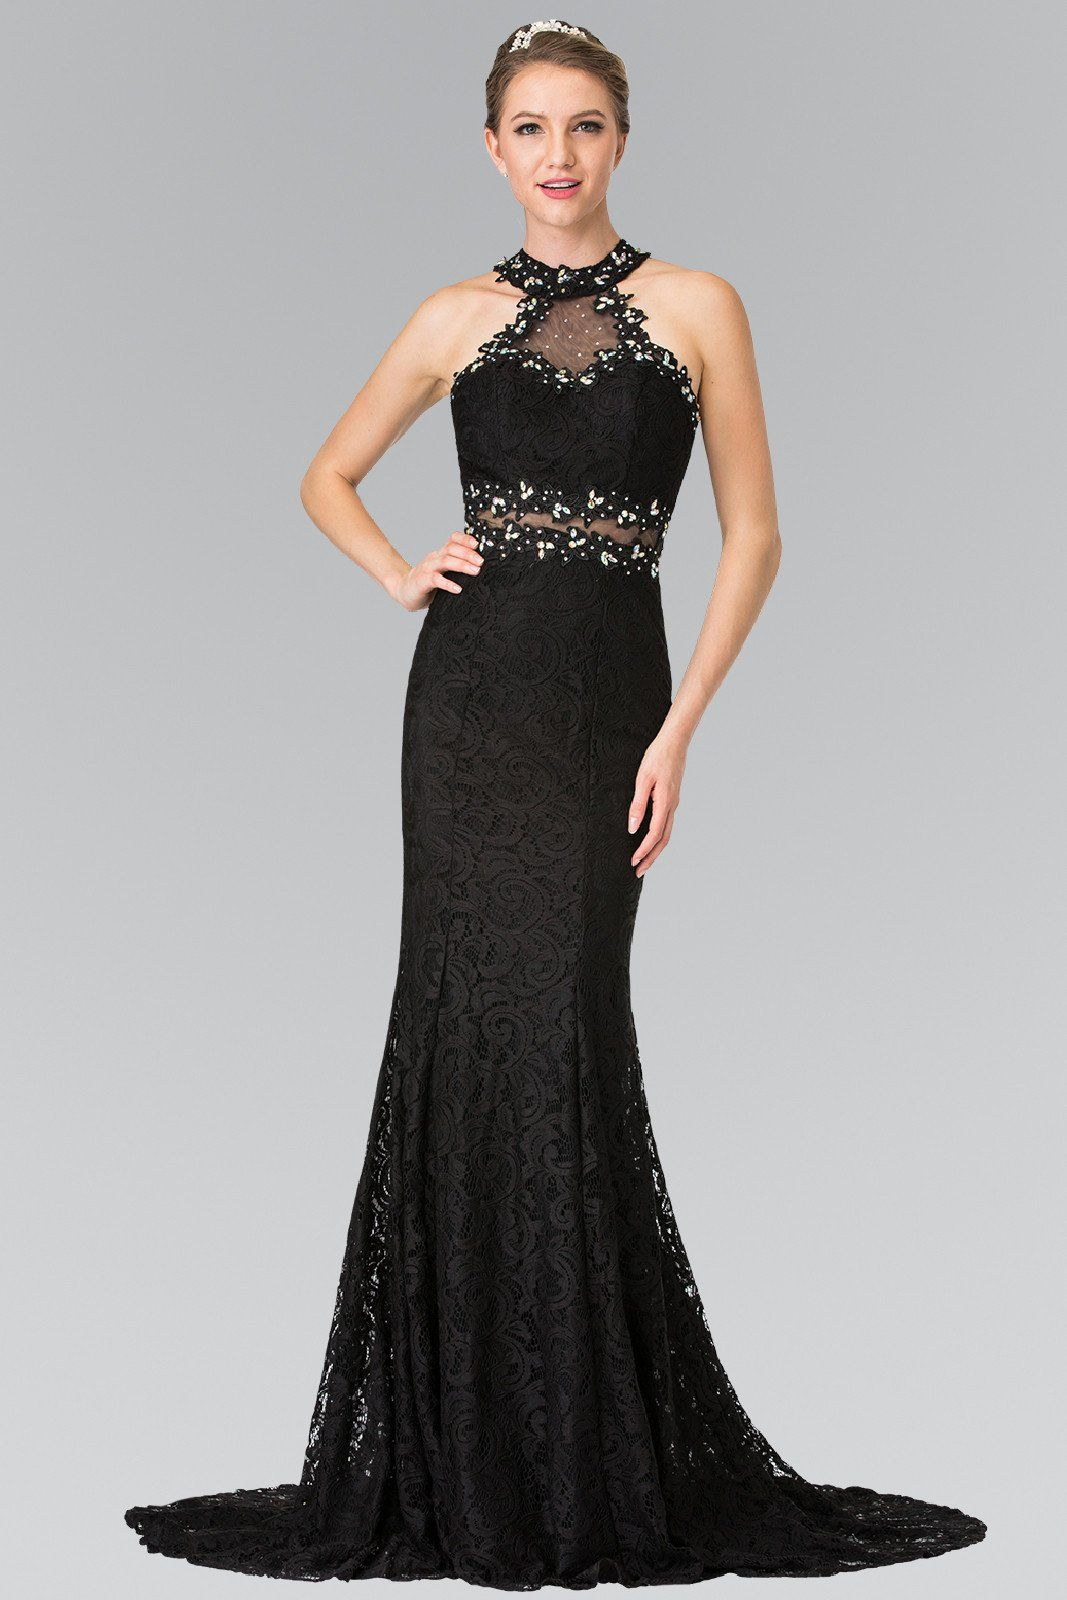 Fitted lace mermaid formal dress with beaded halter neckline and